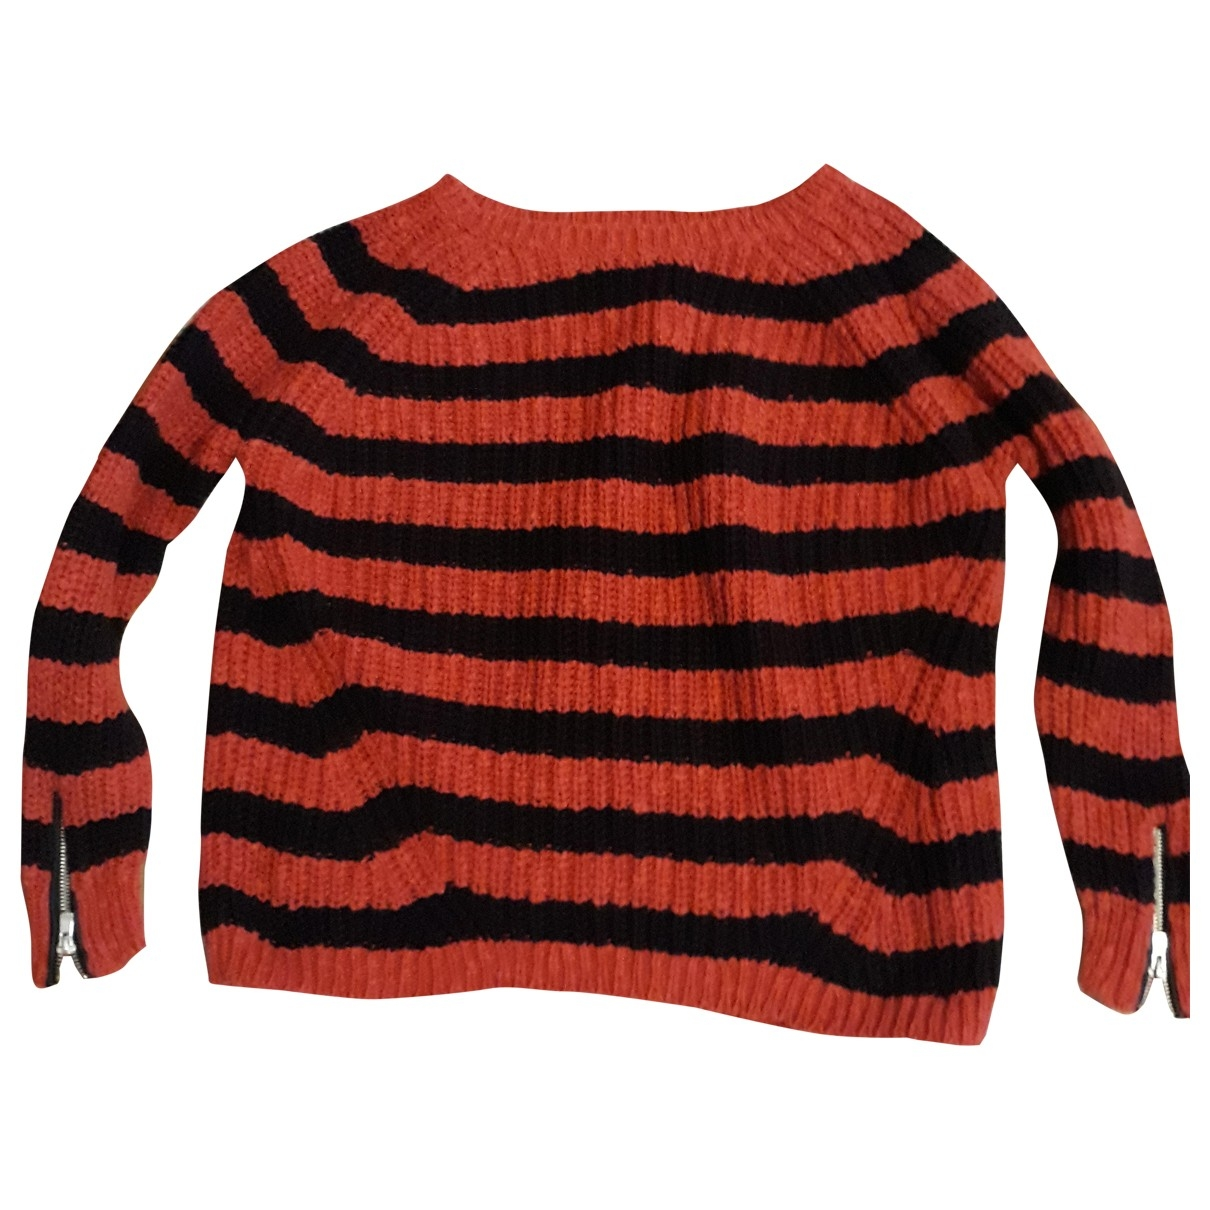 Maje \N Red Cotton Knitwear for Women One Size FR